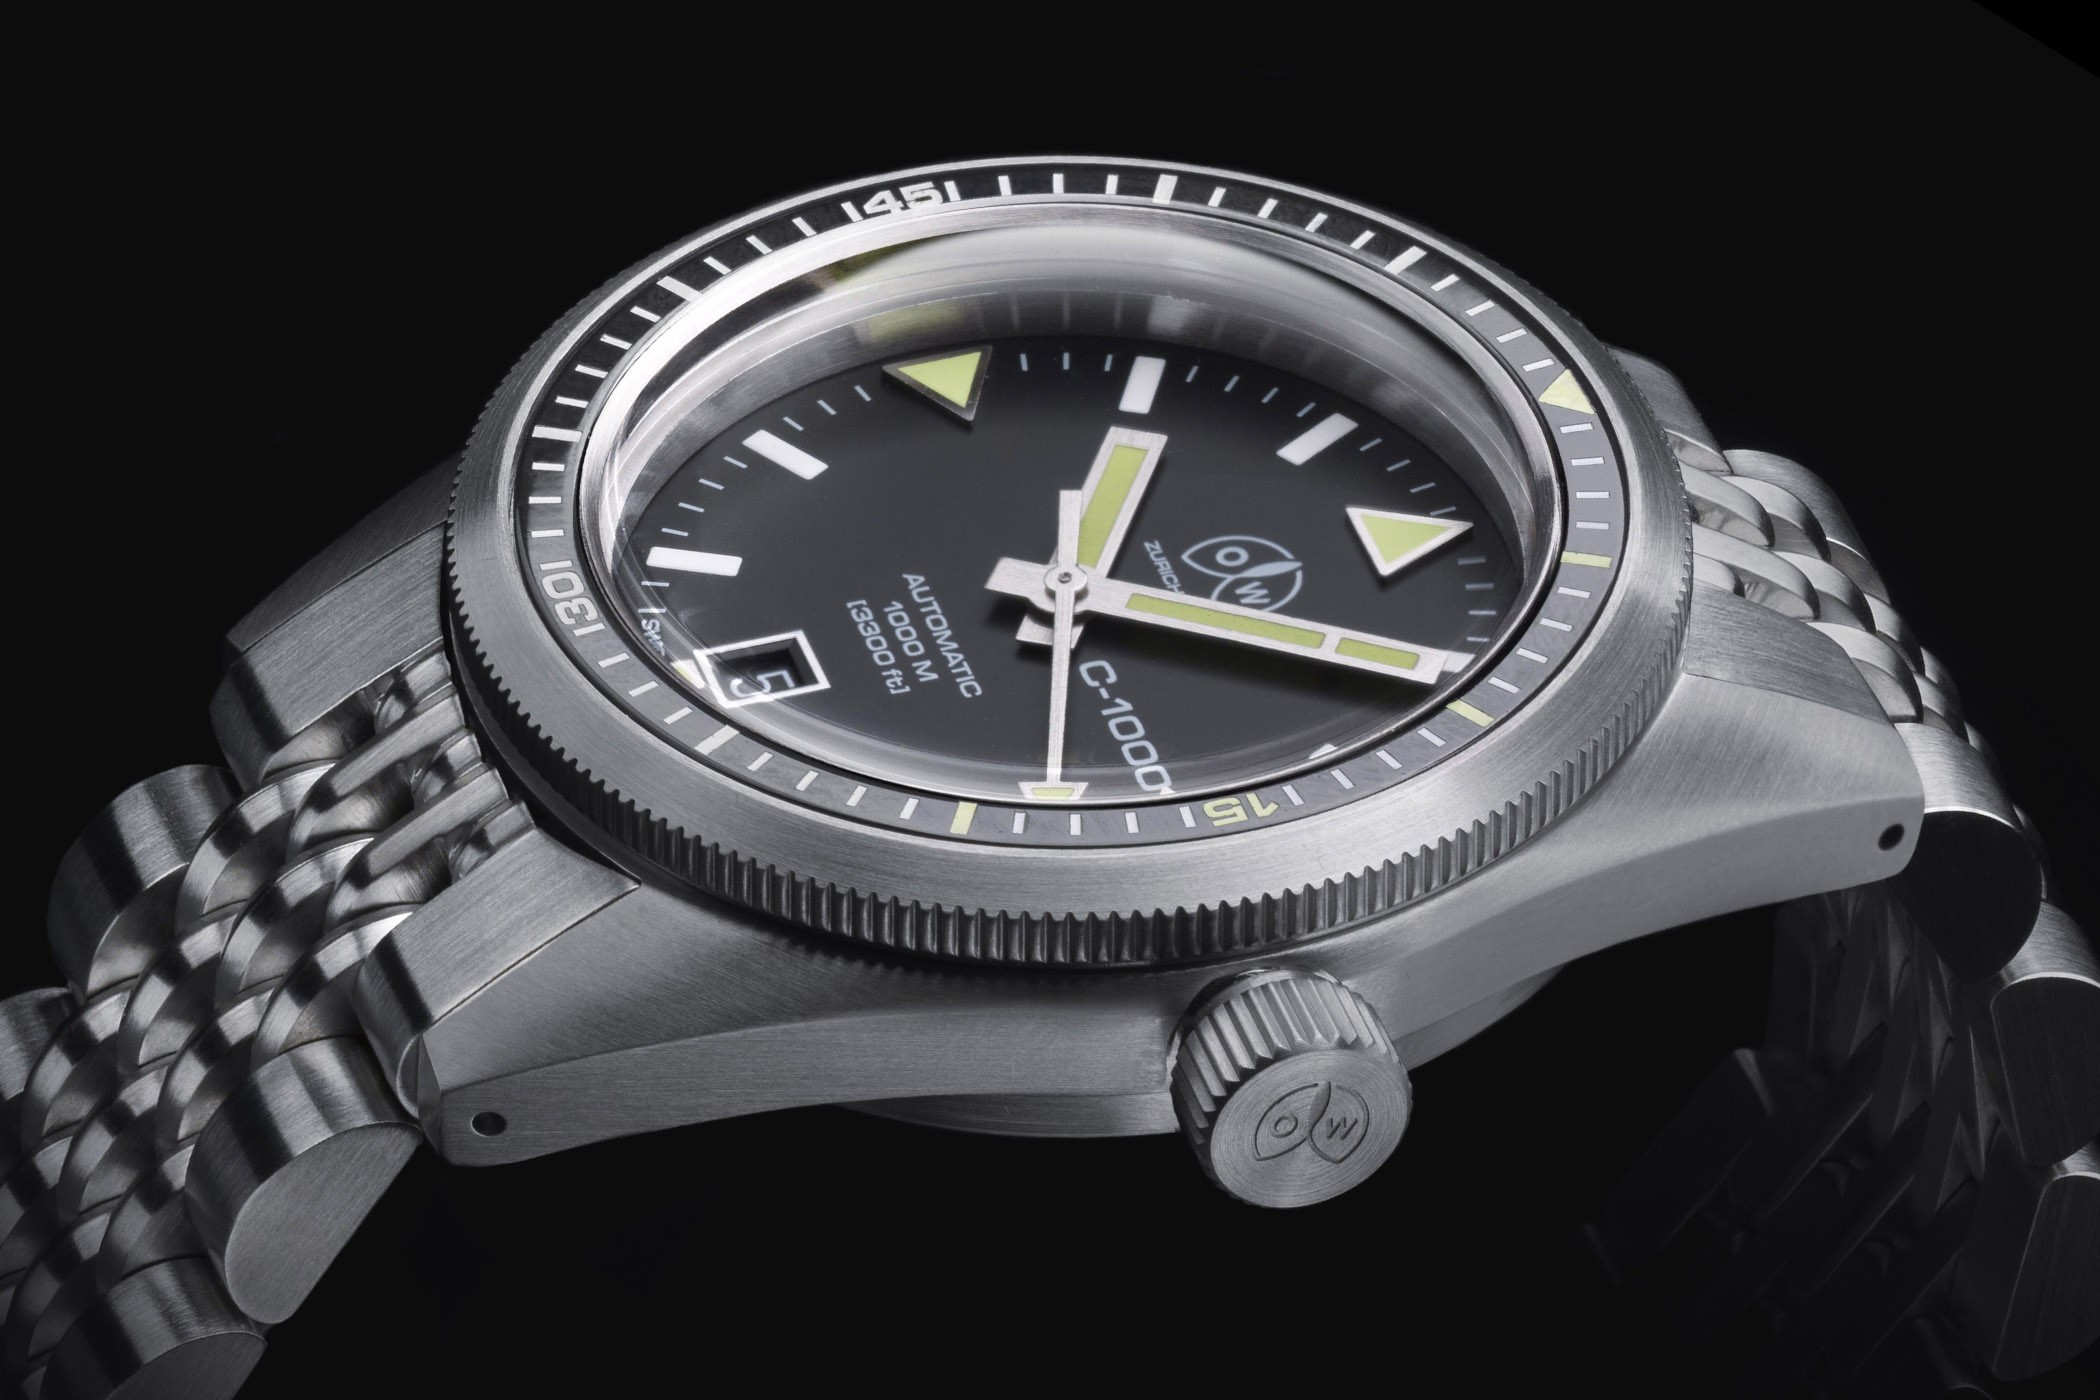 OW C-1000 - Tribute Ollech and Wajs Caribbean 1000 Dive Watch